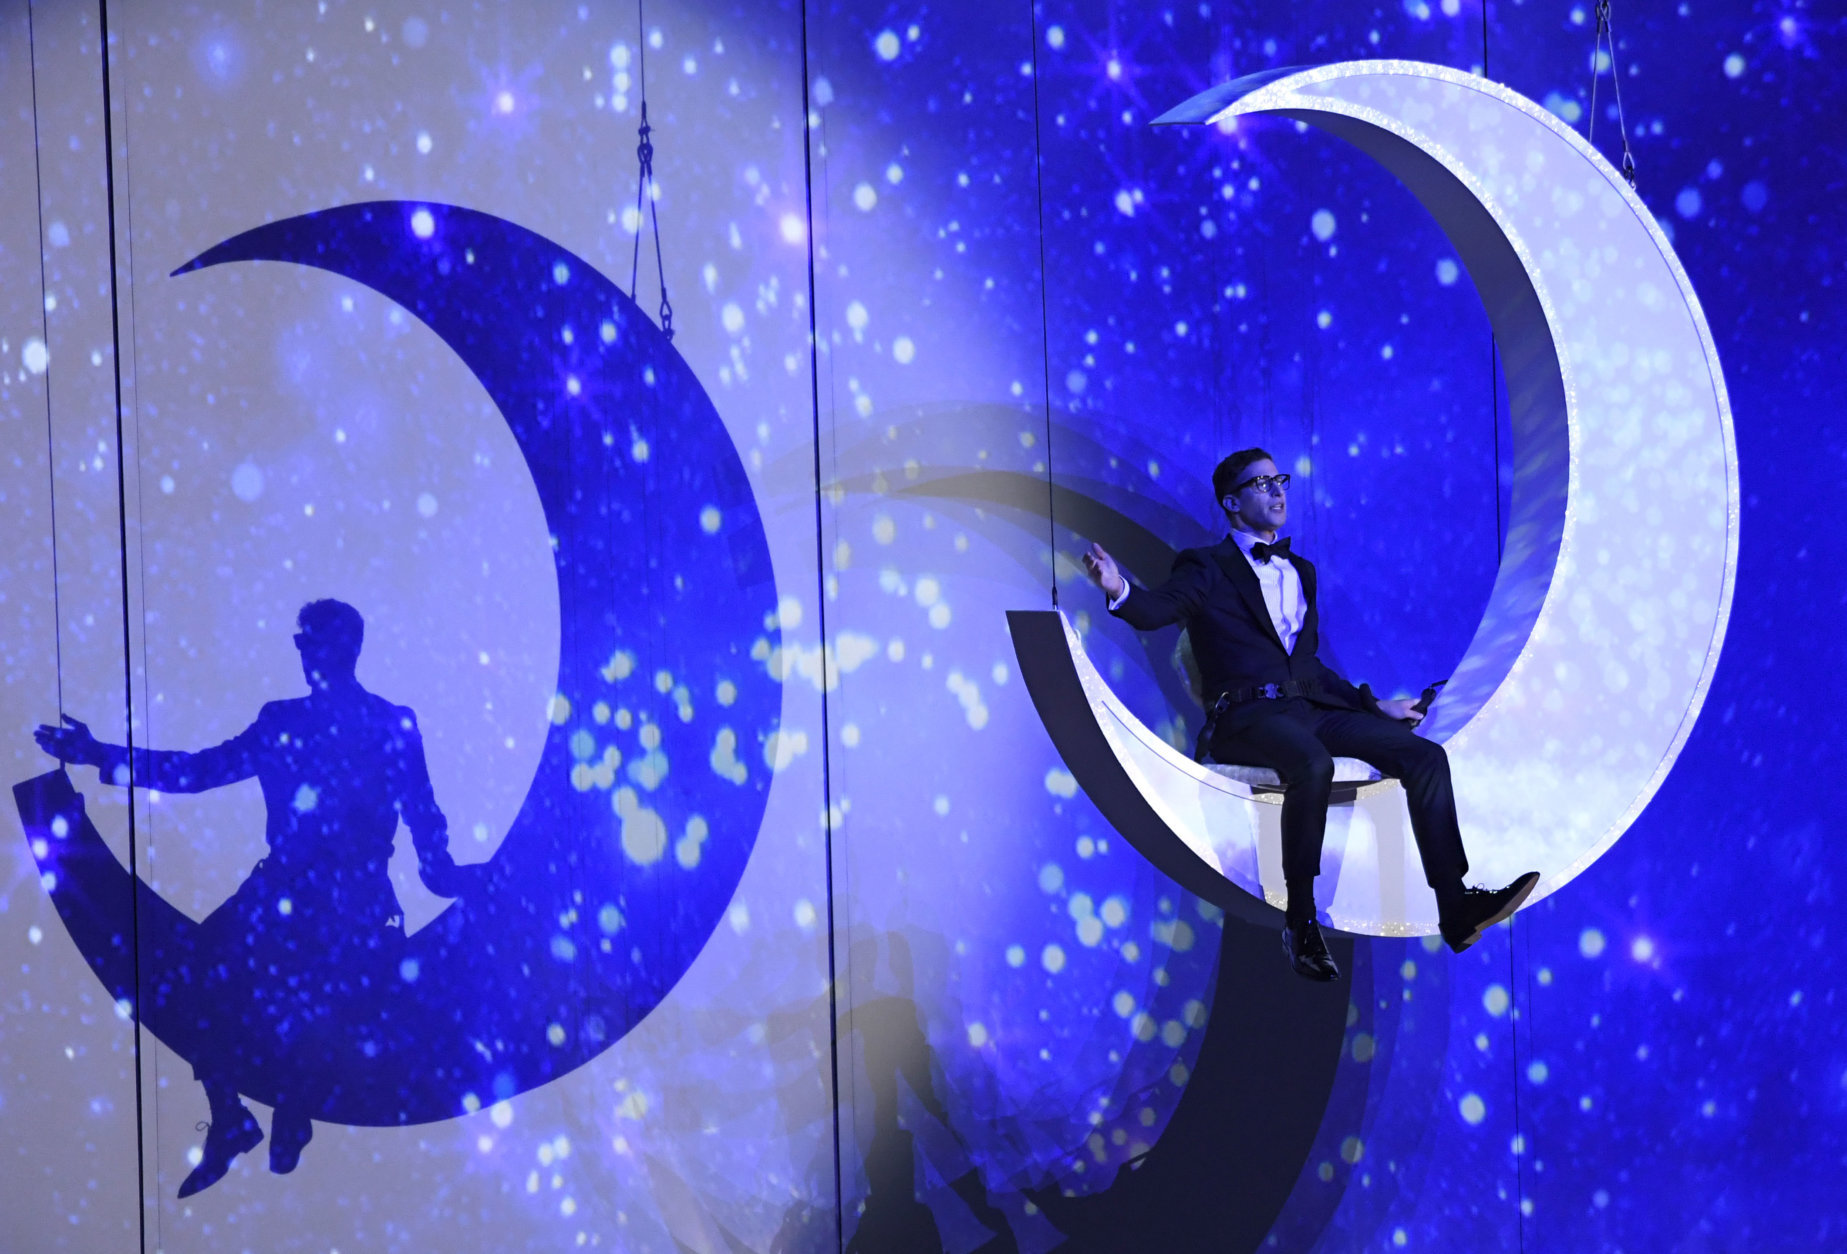 Andy Samberg performs at the 70th Primetime Emmy Awards on Monday, Sept. 17, 2018, at the Microsoft Theater in Los Angeles. (Photo by Chris Pizzello/Invision/AP)